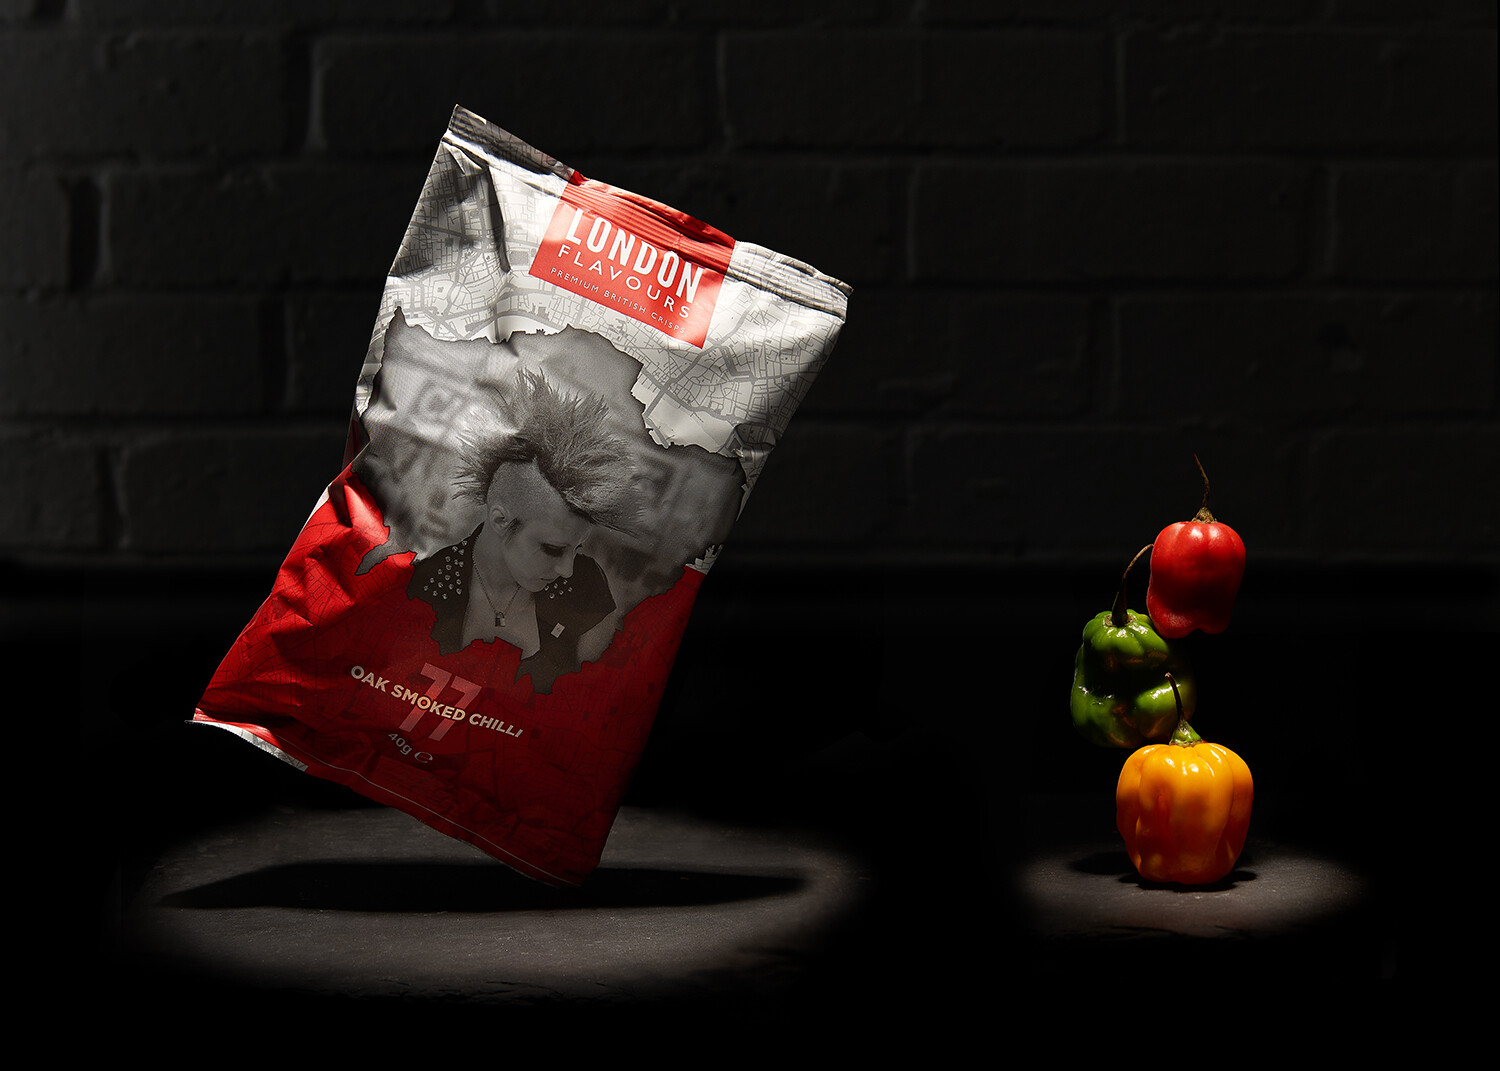 professional photography, Food & Drink Photography, commercial photograph for crisps against a black background